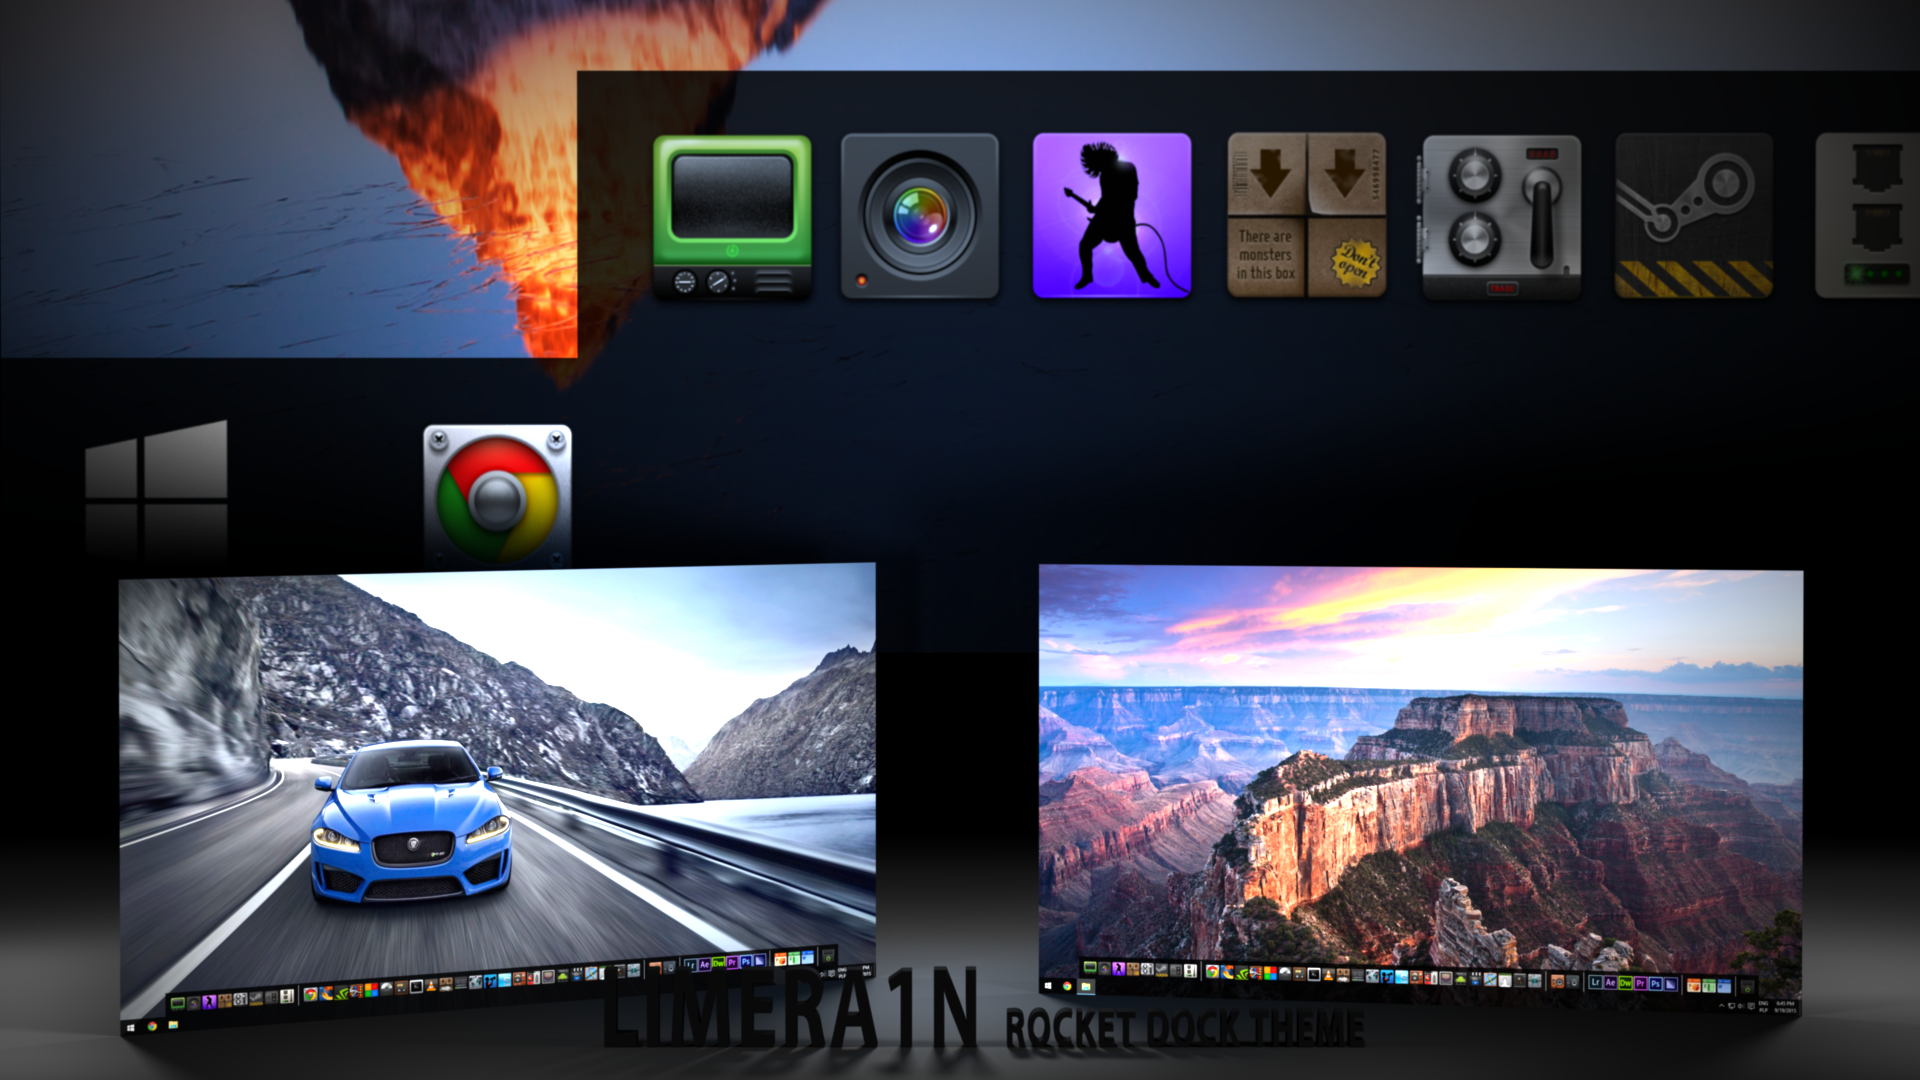 Win10 Theme for RocketDock by limera1n on DeviantArt